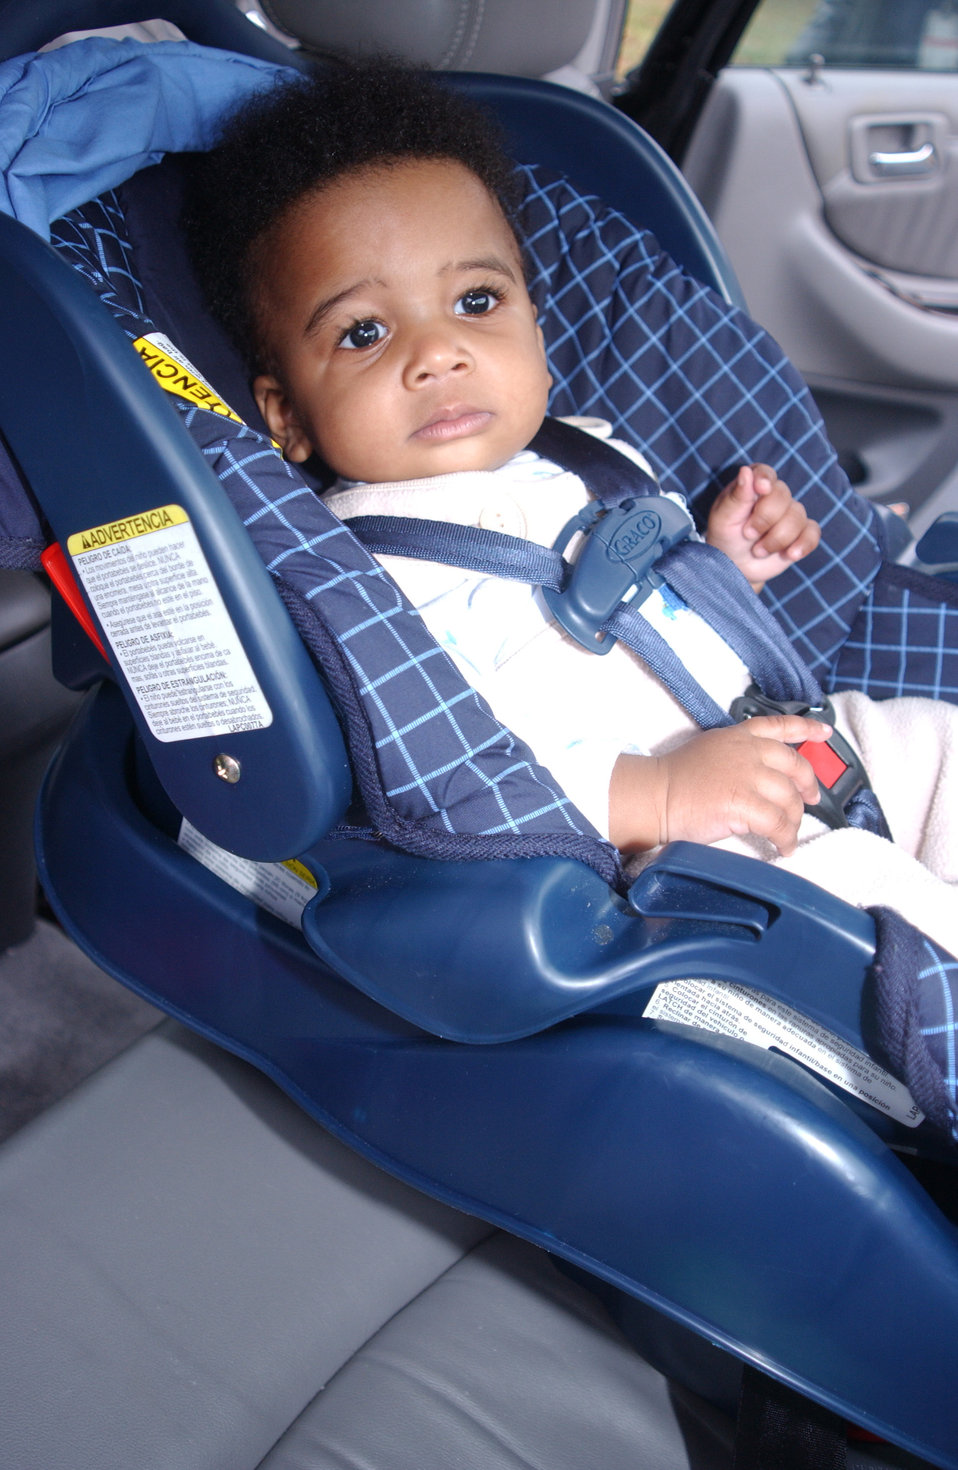 This 2004 photograph shows an infant who has been properly positioned, and buckled into a rear-facing infant-only car seat. For example, not